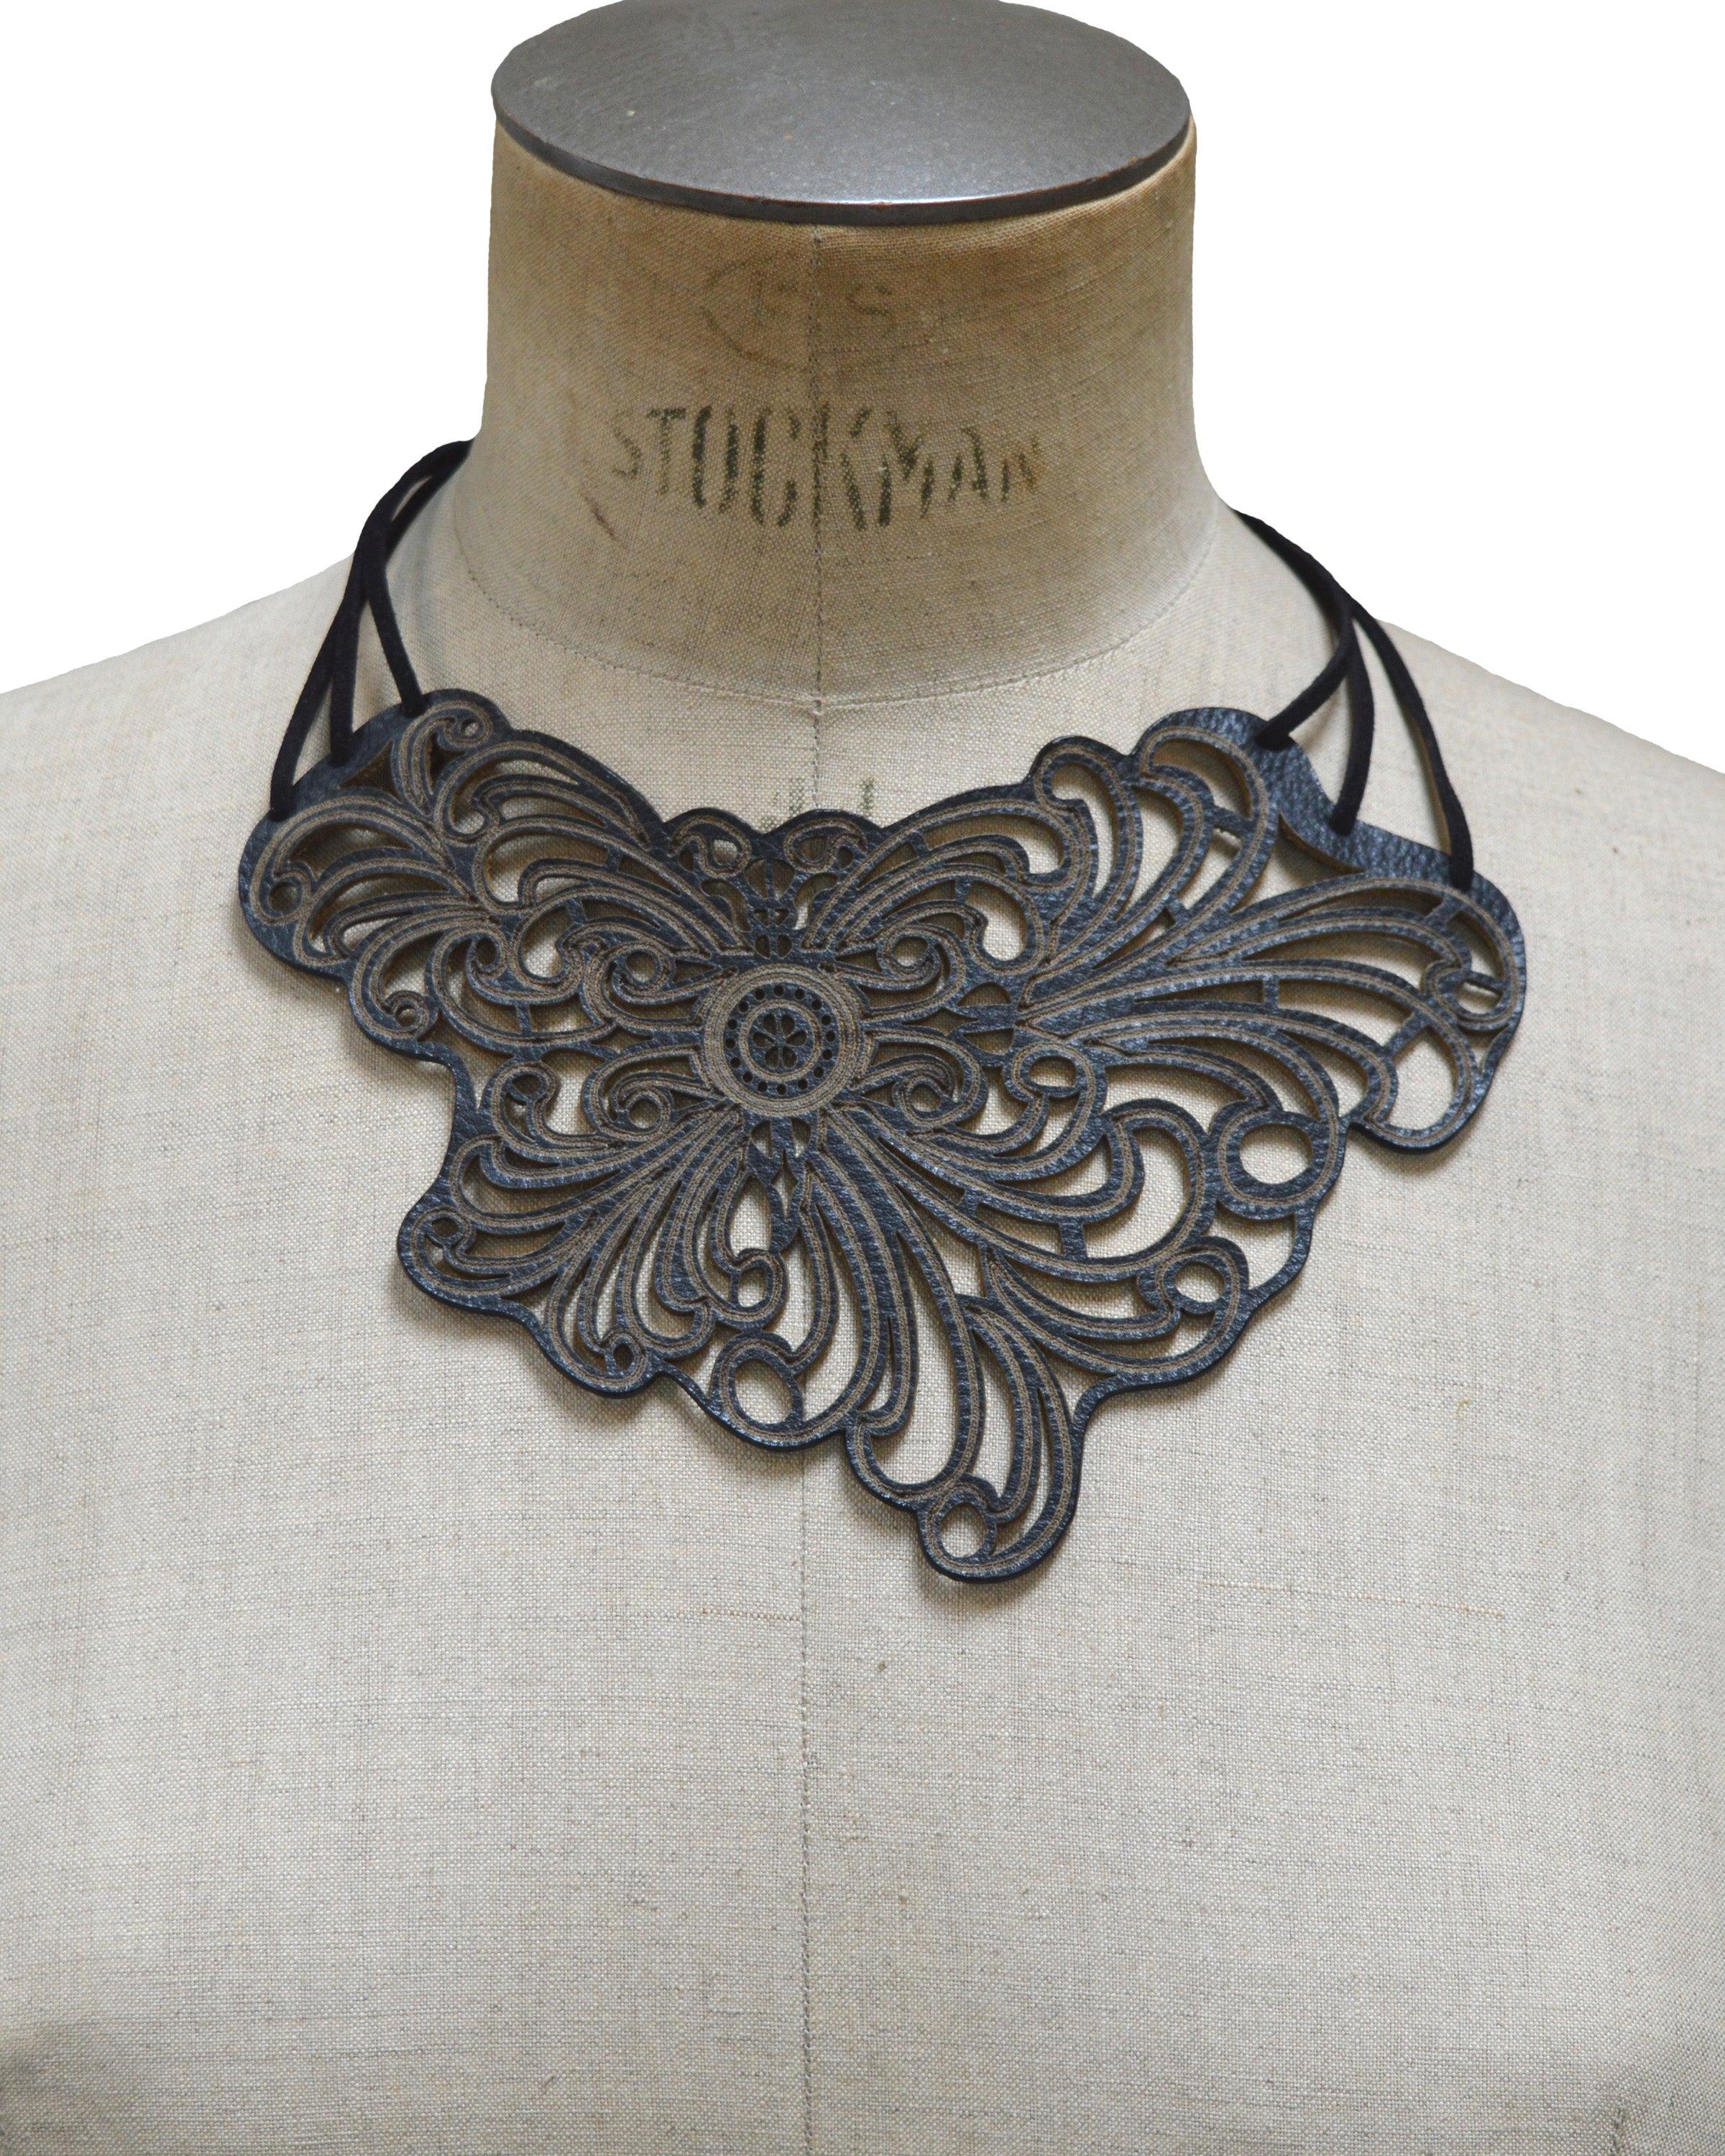 ELENA Black leather necklace, Elena Designs, Victoria BC